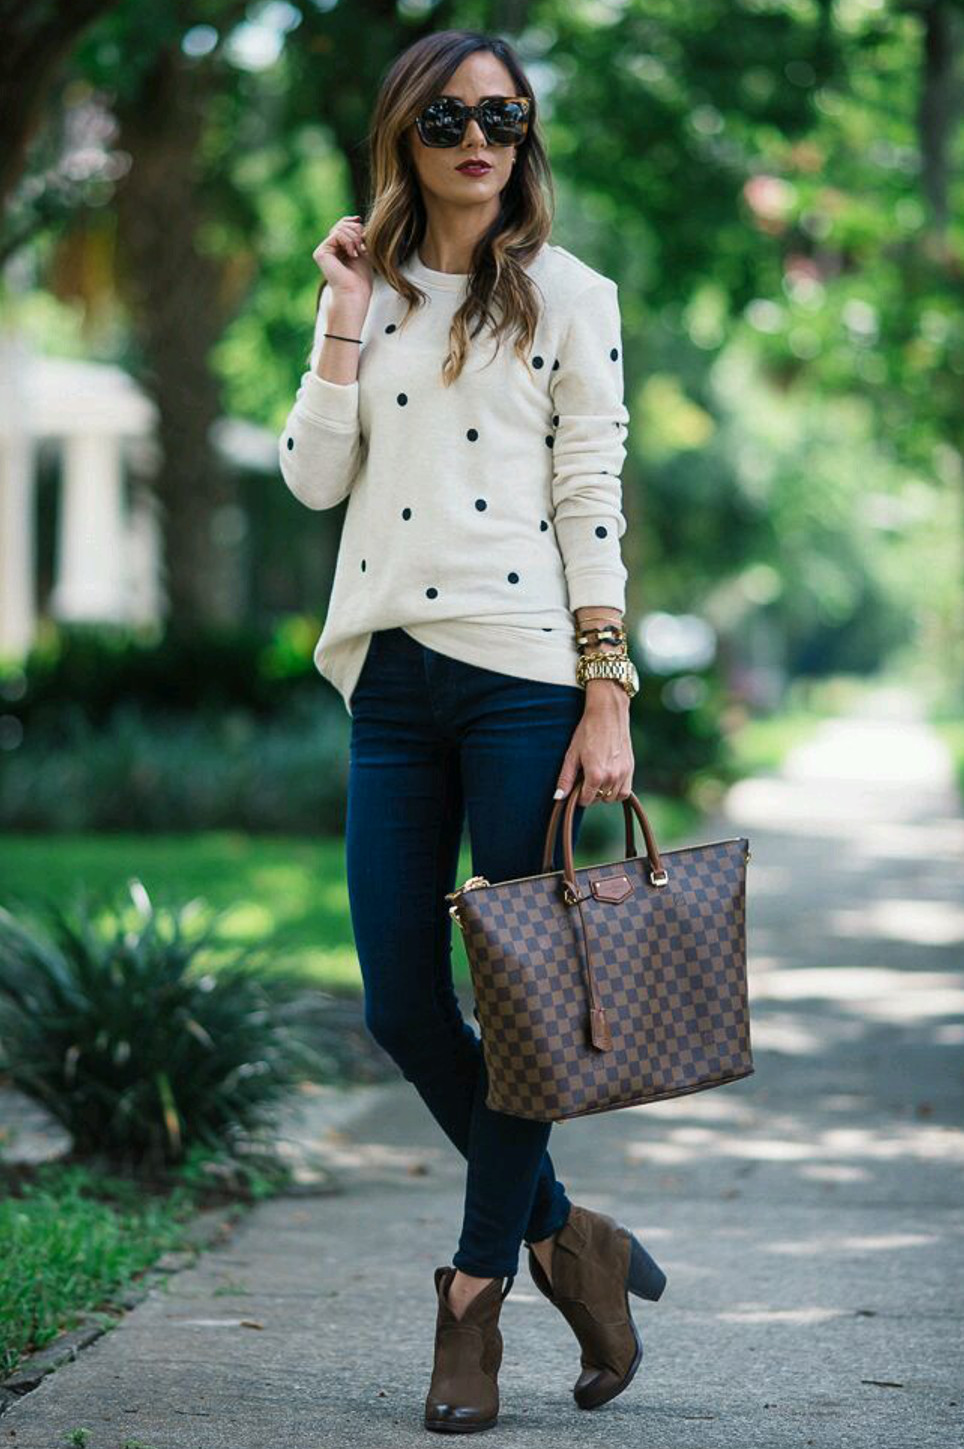 What to wear with jeans? Million ways to style yourself for the office in one place